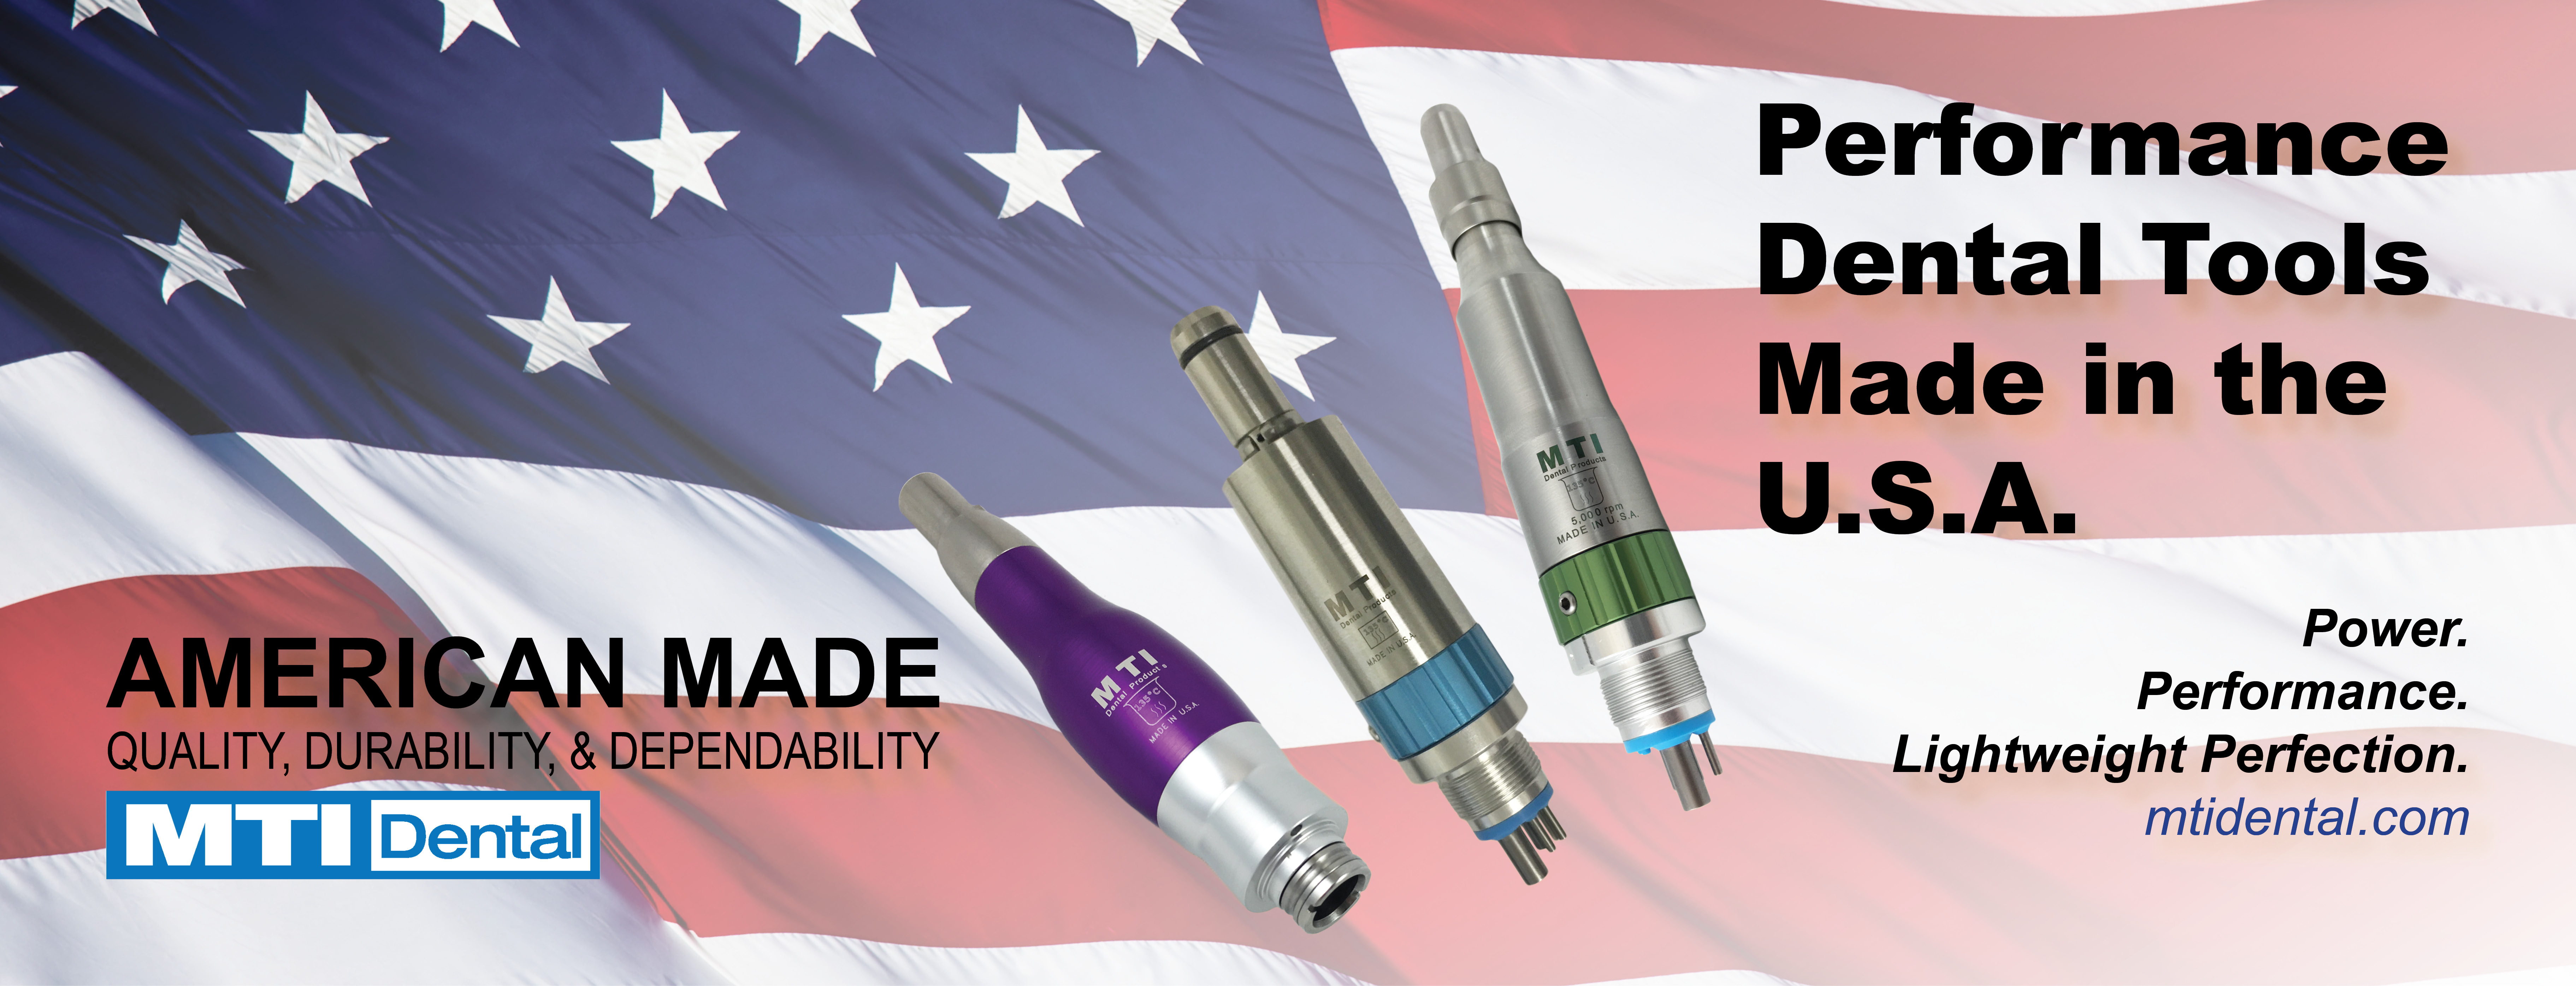 MTI Dental. An American Manufacturer of Precision Dental Tools and Accessories for 39 Years.